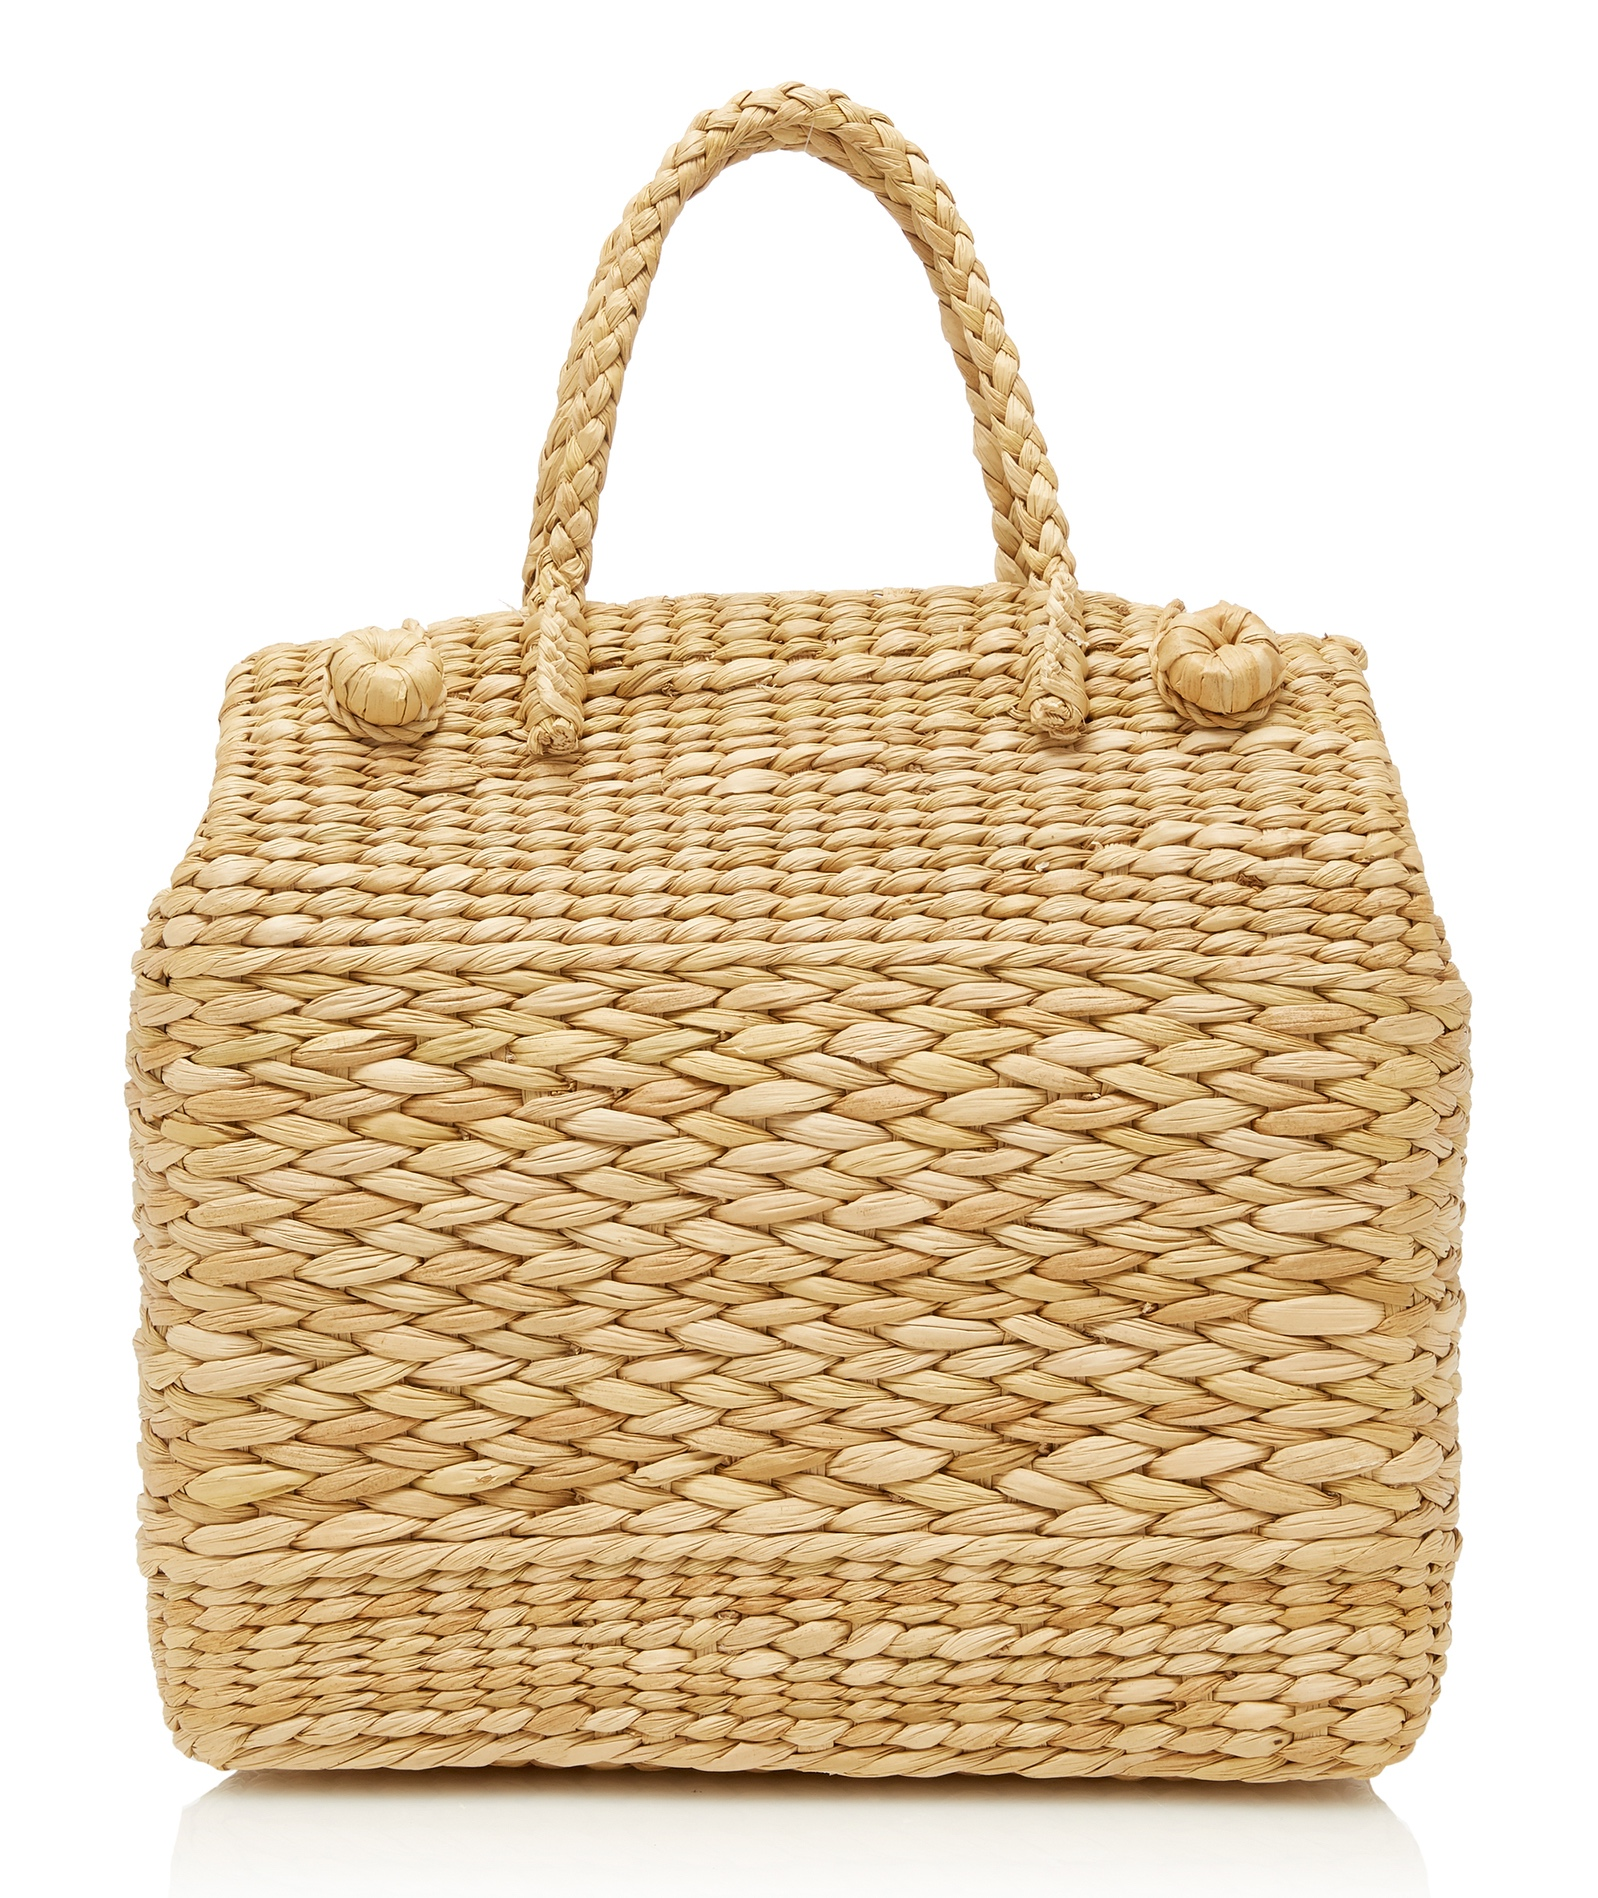 We Are Poolside Monogrammable Nines Tote